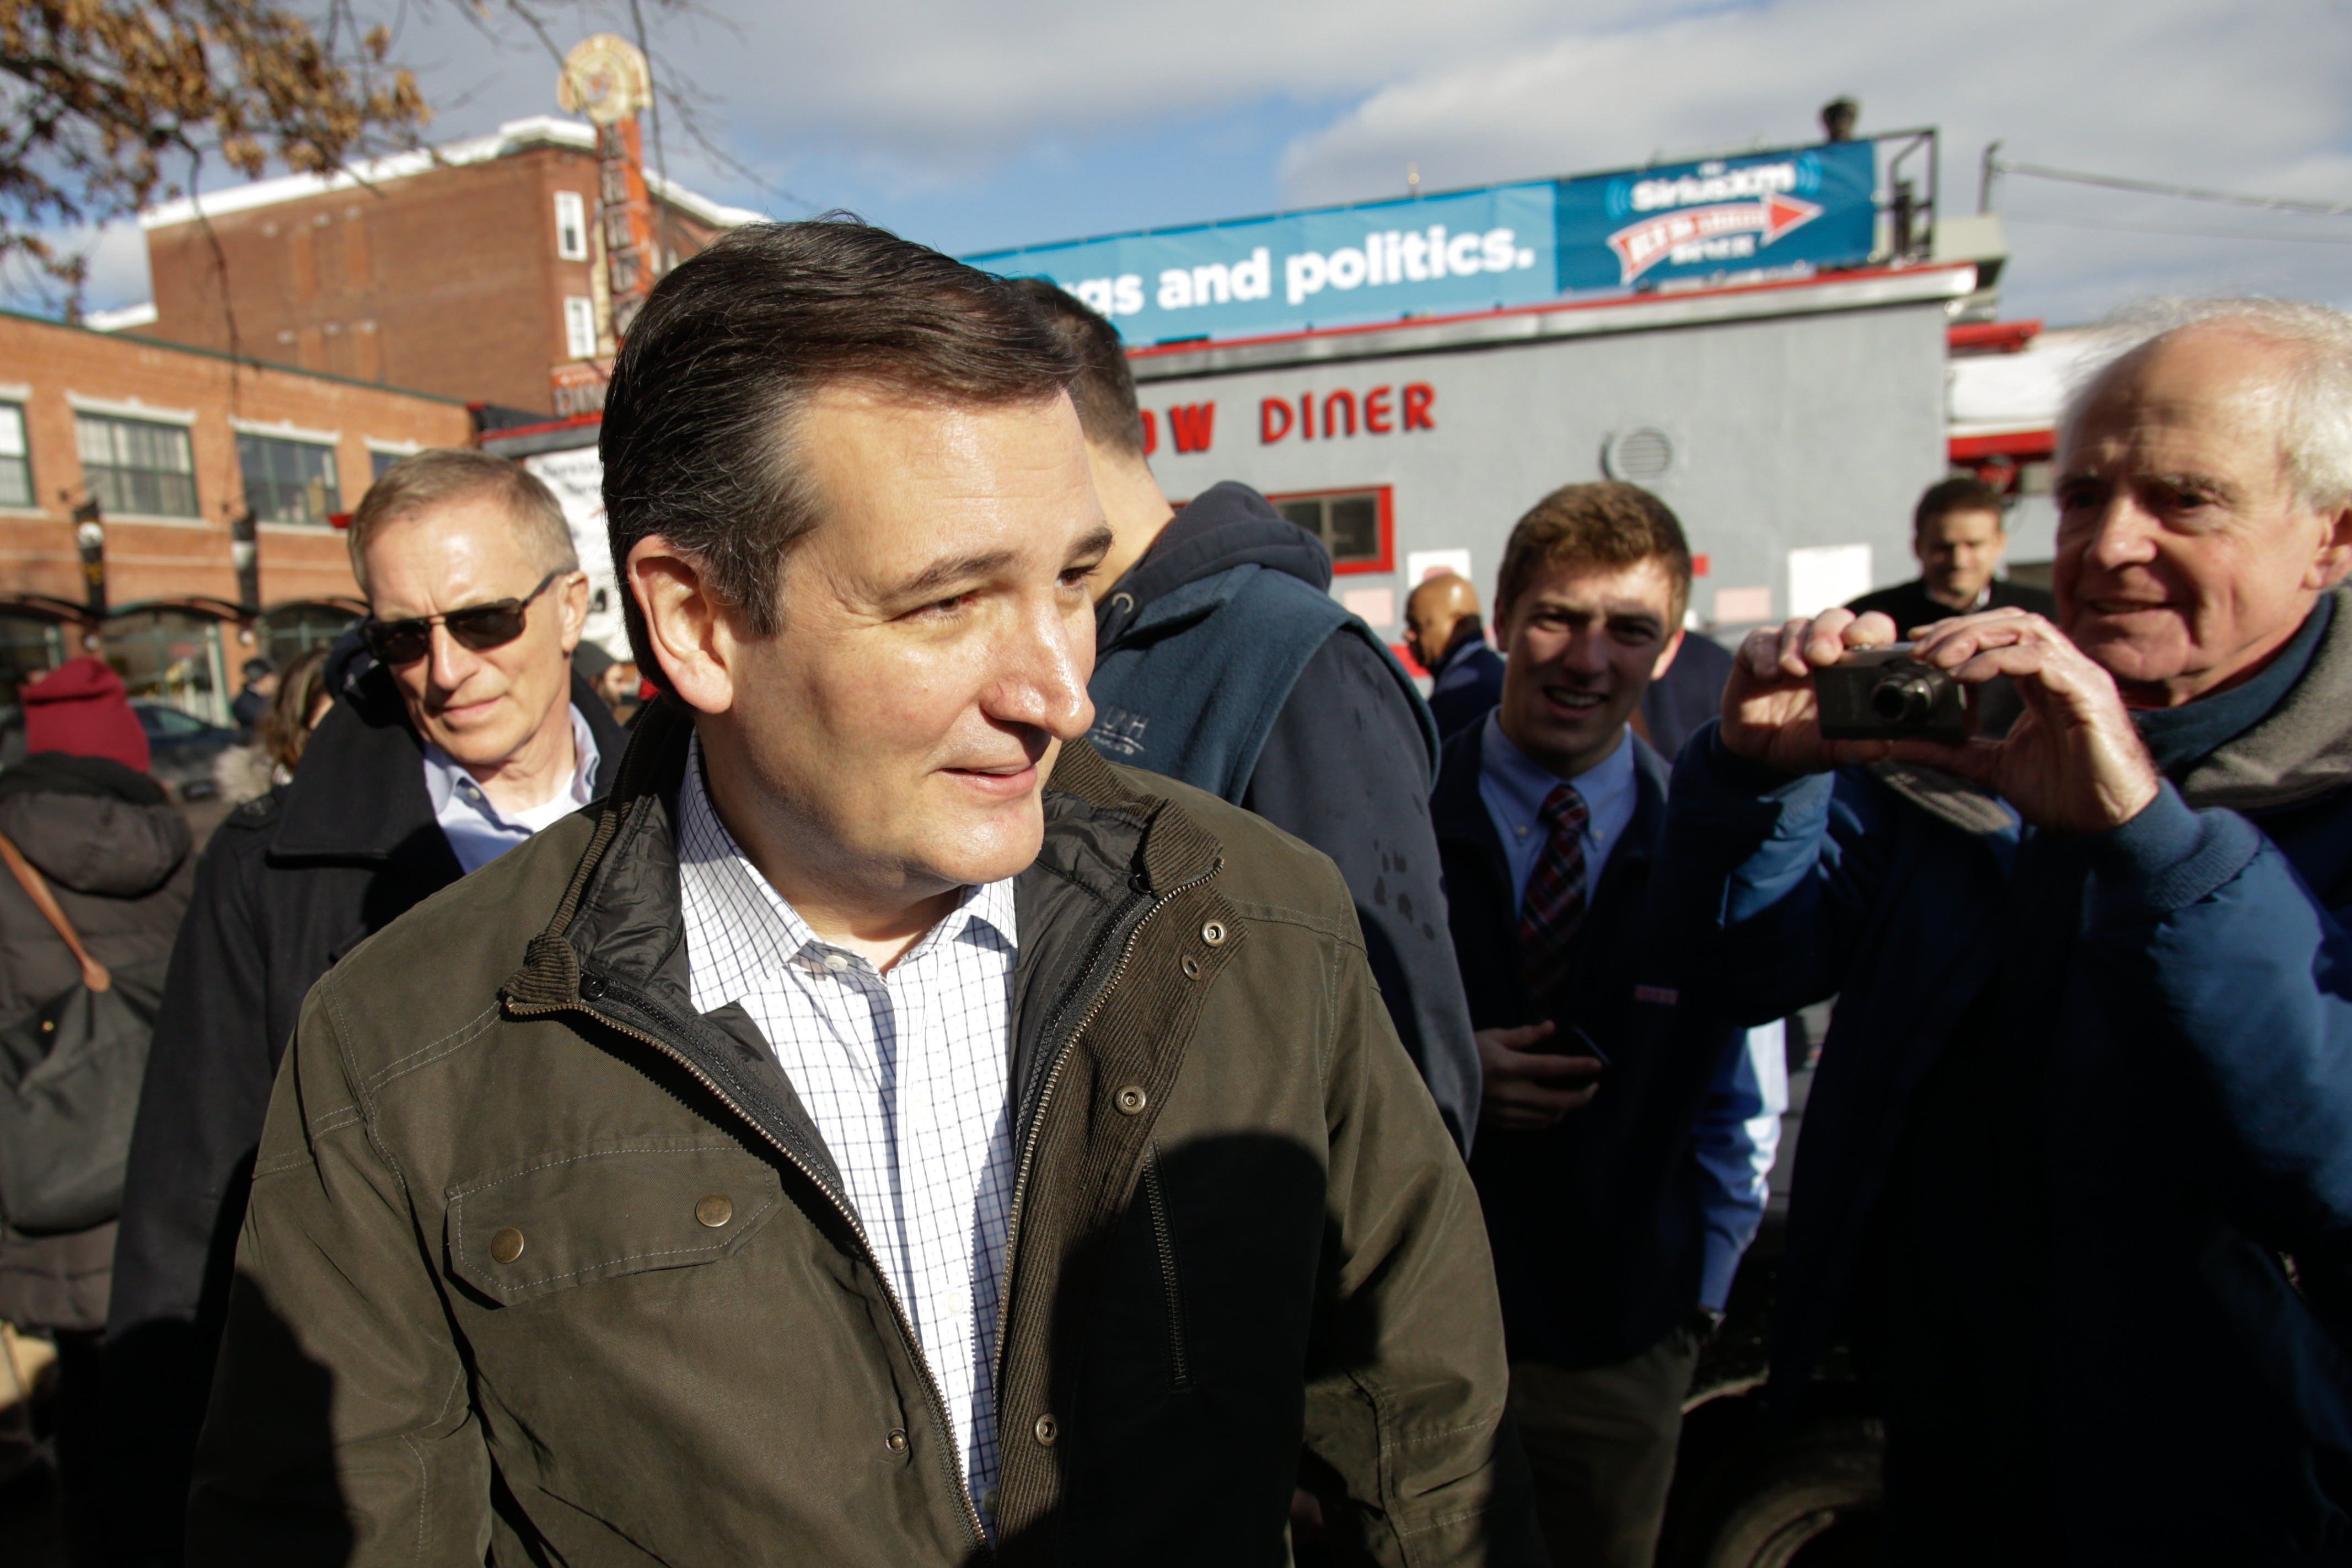 Cruz leaves a campaign stop at the Red Arrow Diner in Manchester, New Hampshire.